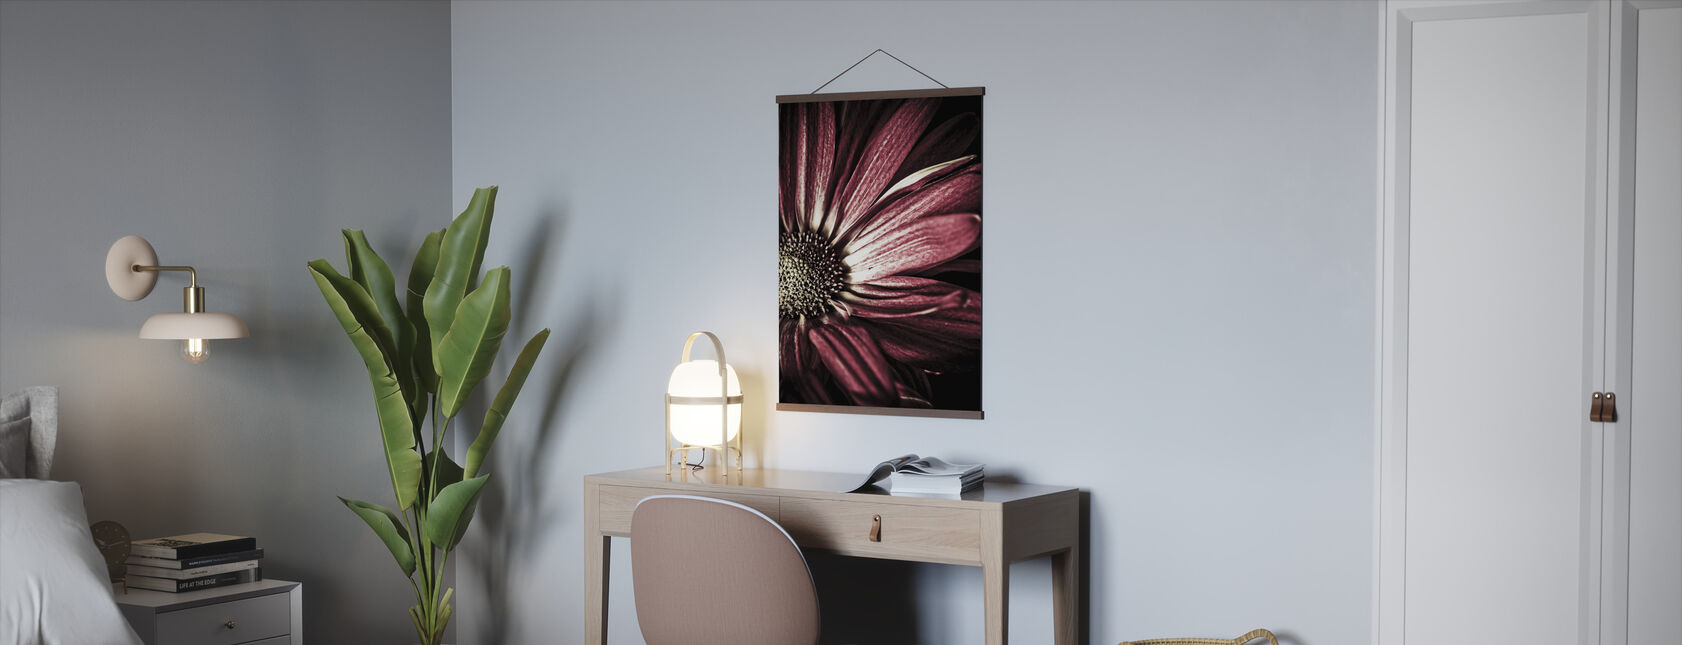 Dark Daisy - Poster - Office